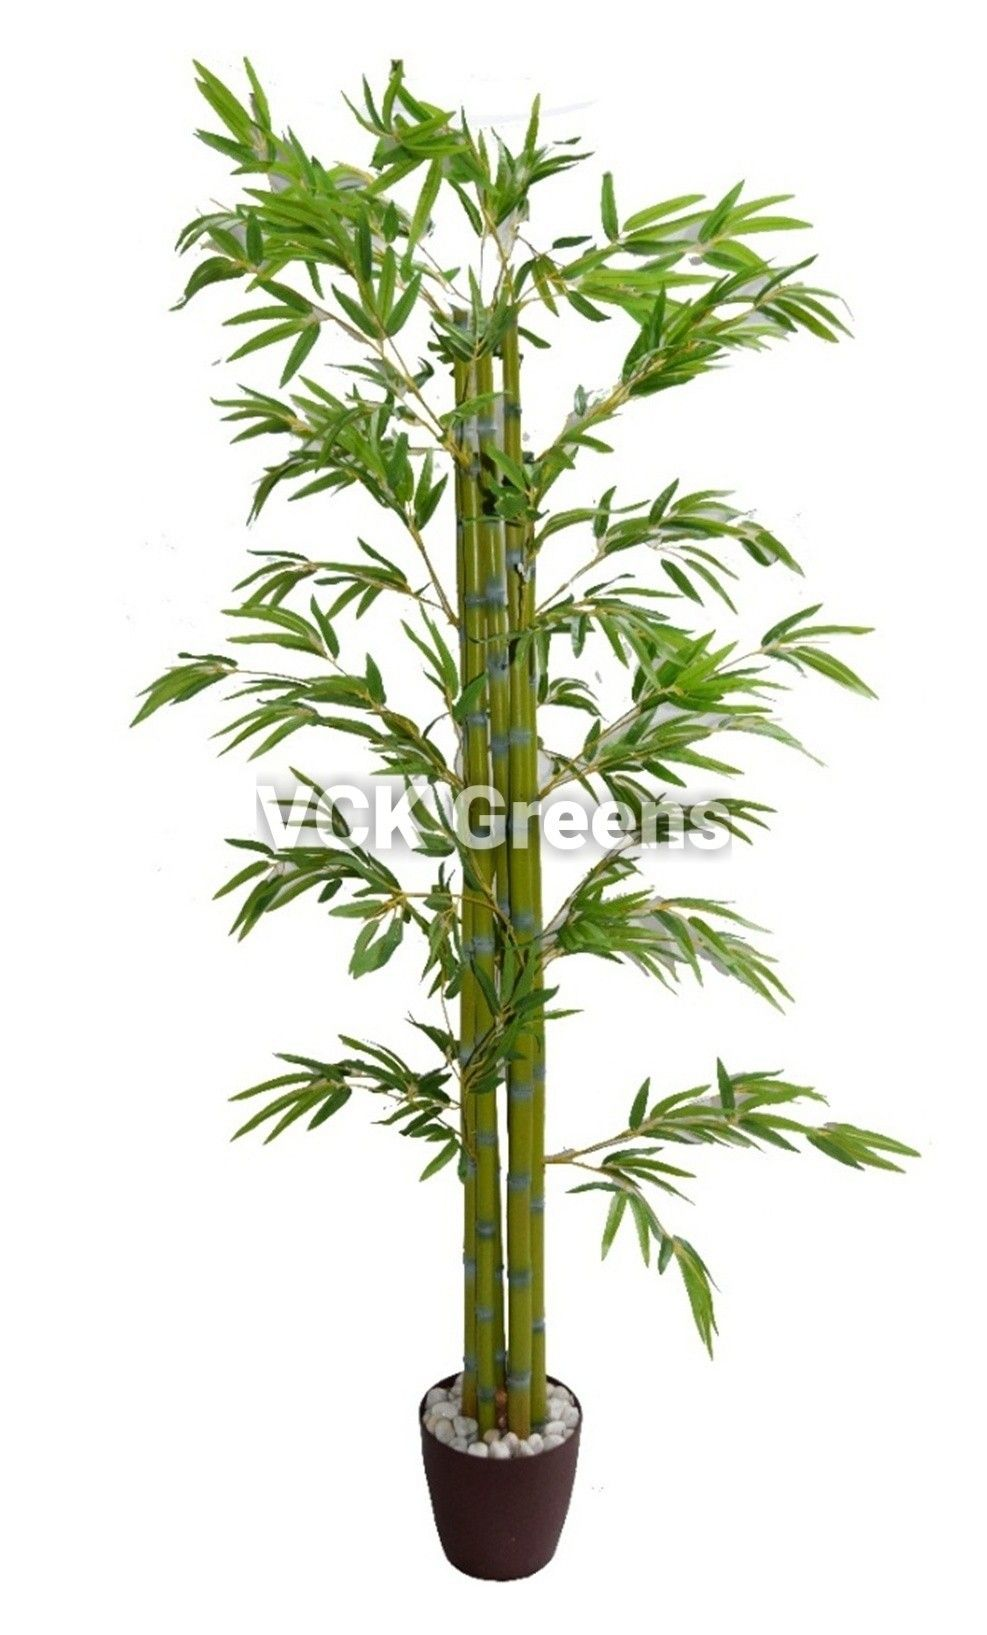 Artificial Bamboo Leaves Plant for home and offices. There are 6 sticks in single plant. Product Height - 170cm (5.7Feet), Product comes without pot. Product Code - #VCKAP2043. #artificialplants #fakeplants